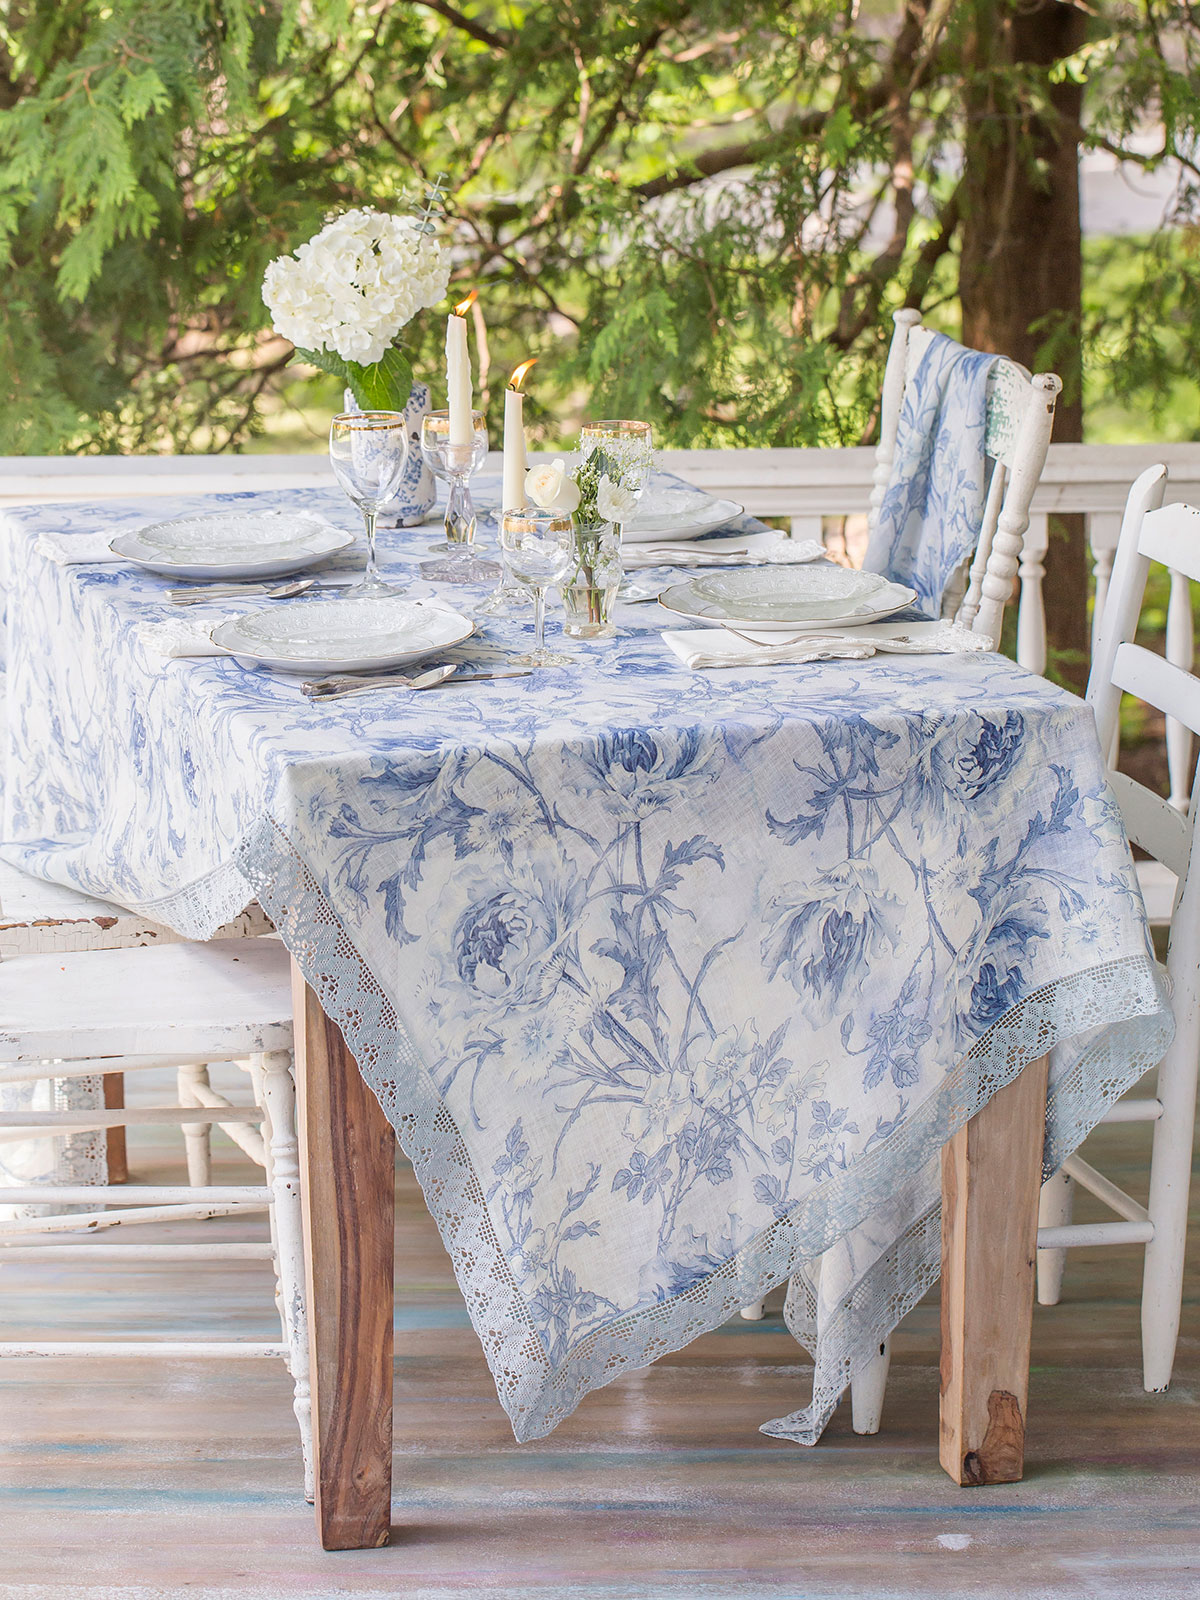 Rose nouveau linen tablecloth linens kitchen tablecloths rose nouveau linen tablecloth workwithnaturefo